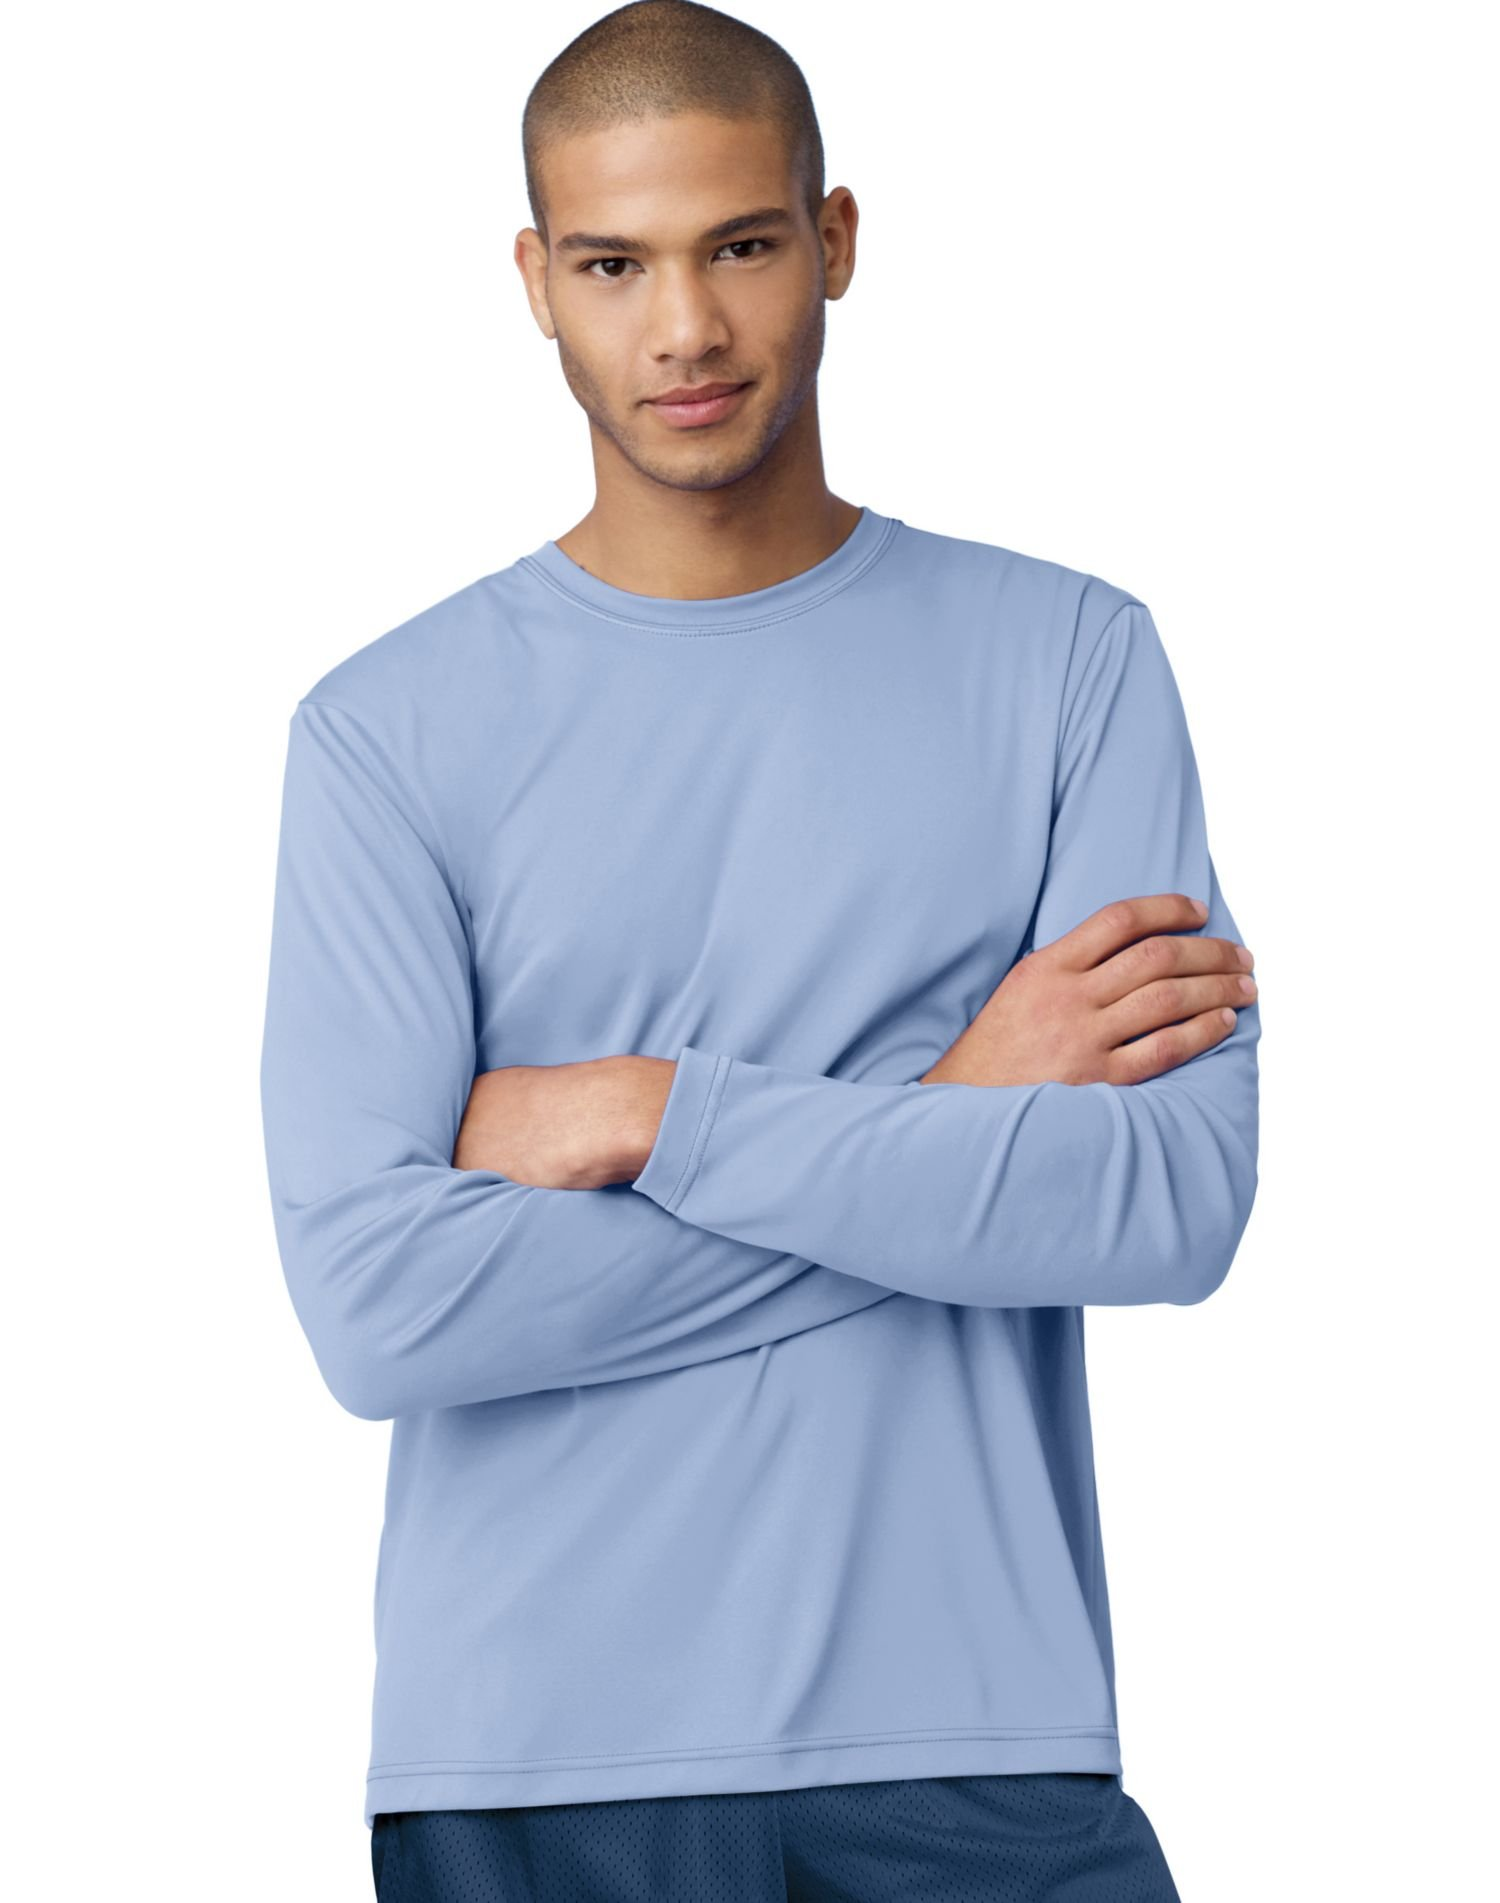 Hanes Adult Cool Dri Long Sleeve Performance Tee, Light Blue, Small by Hanes (Image #1)